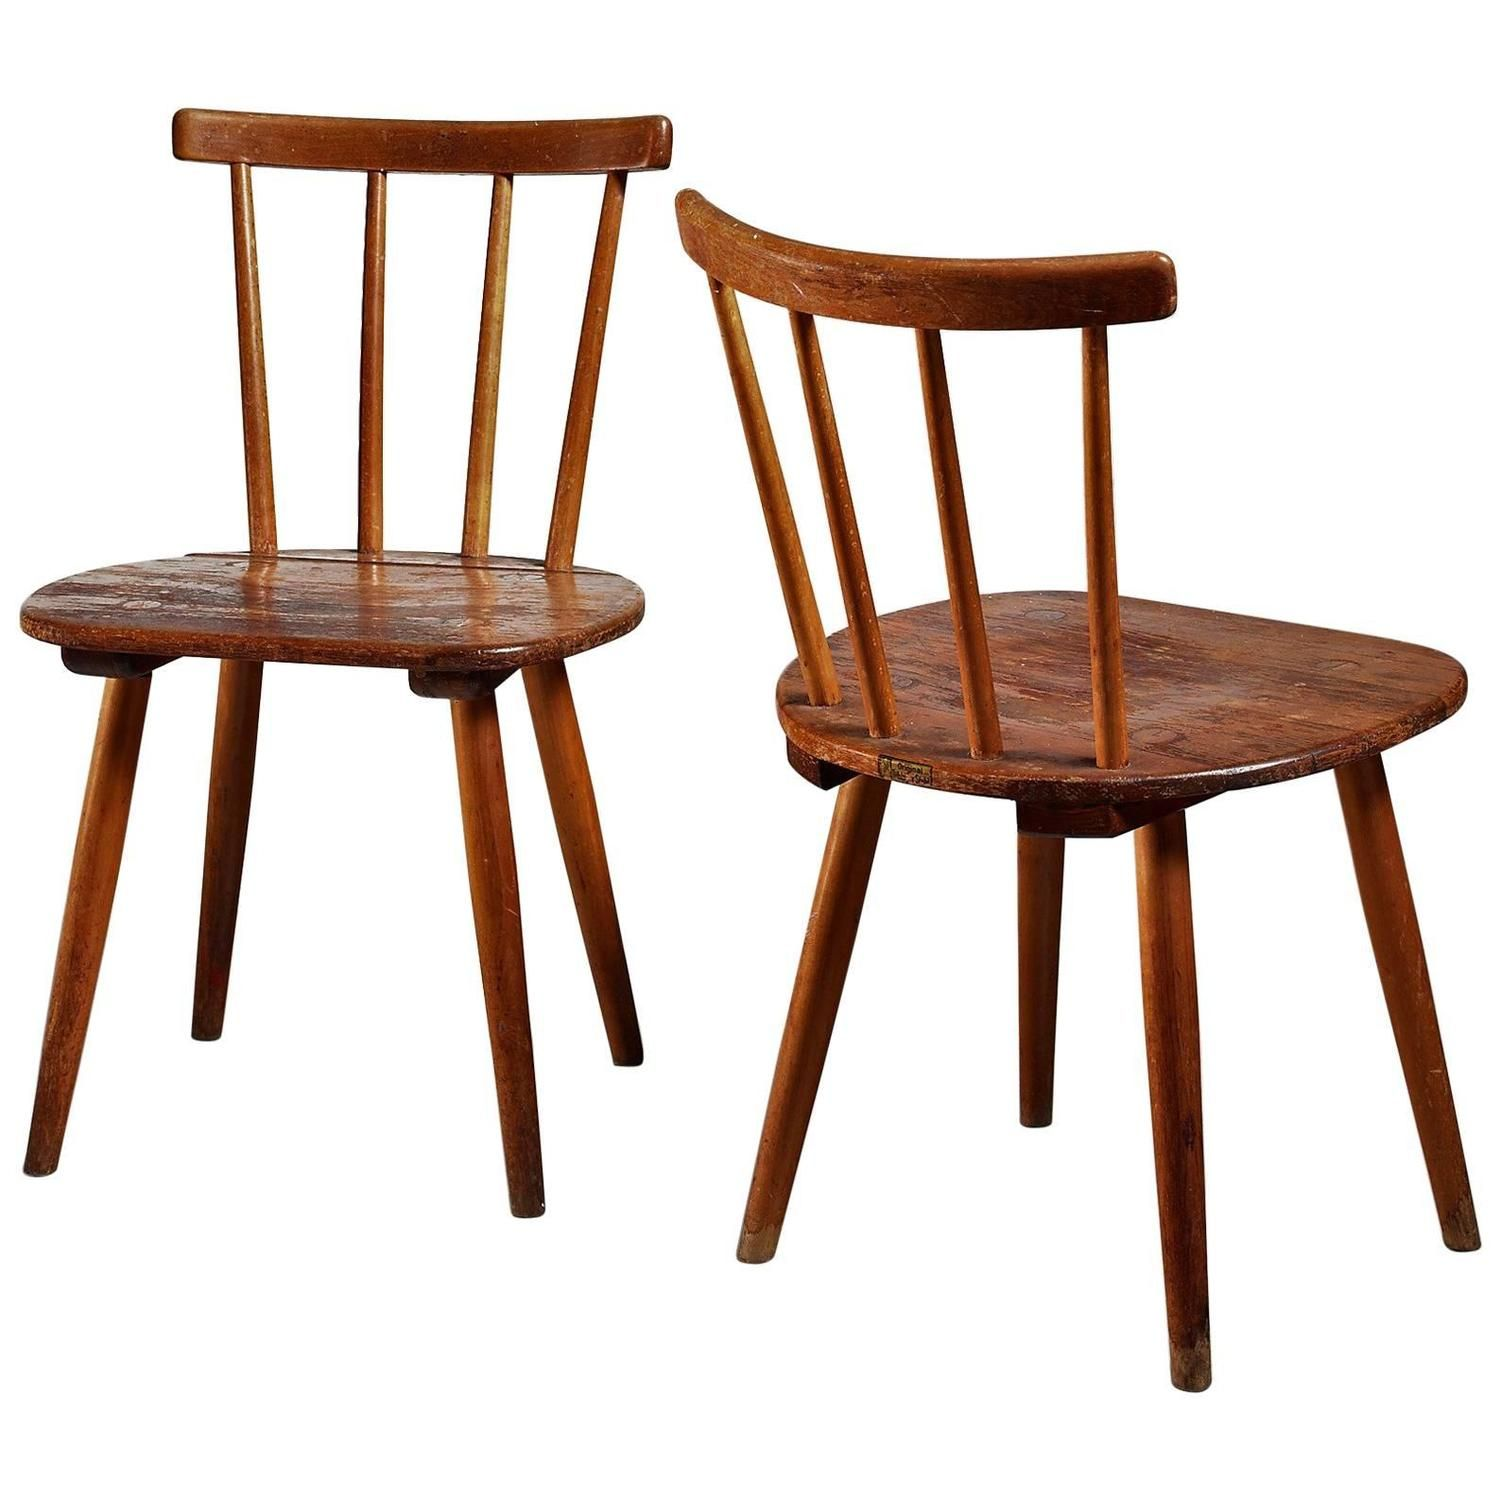 Pair of tubinger chairs by adolf g schneck germany 1930s